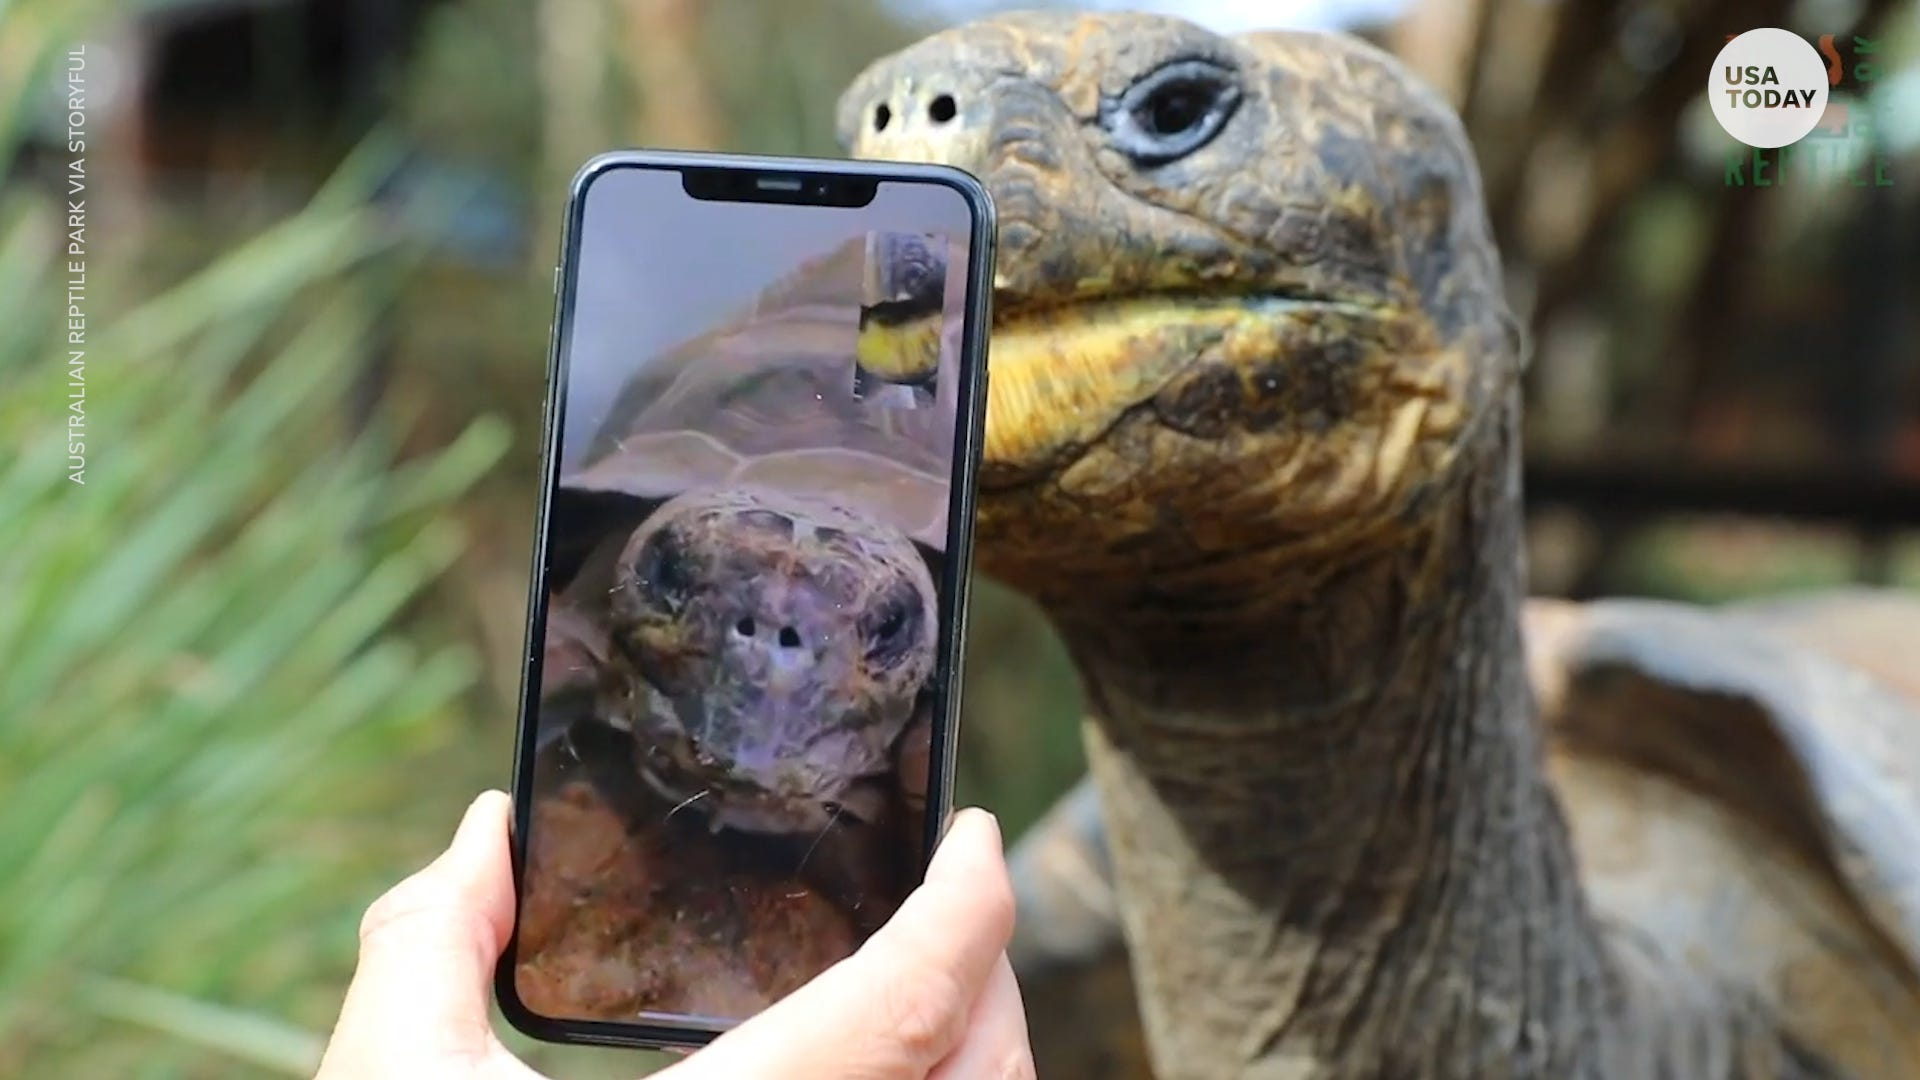 Pair of endangered Galapagos tortoises go on their first date via FaceTime